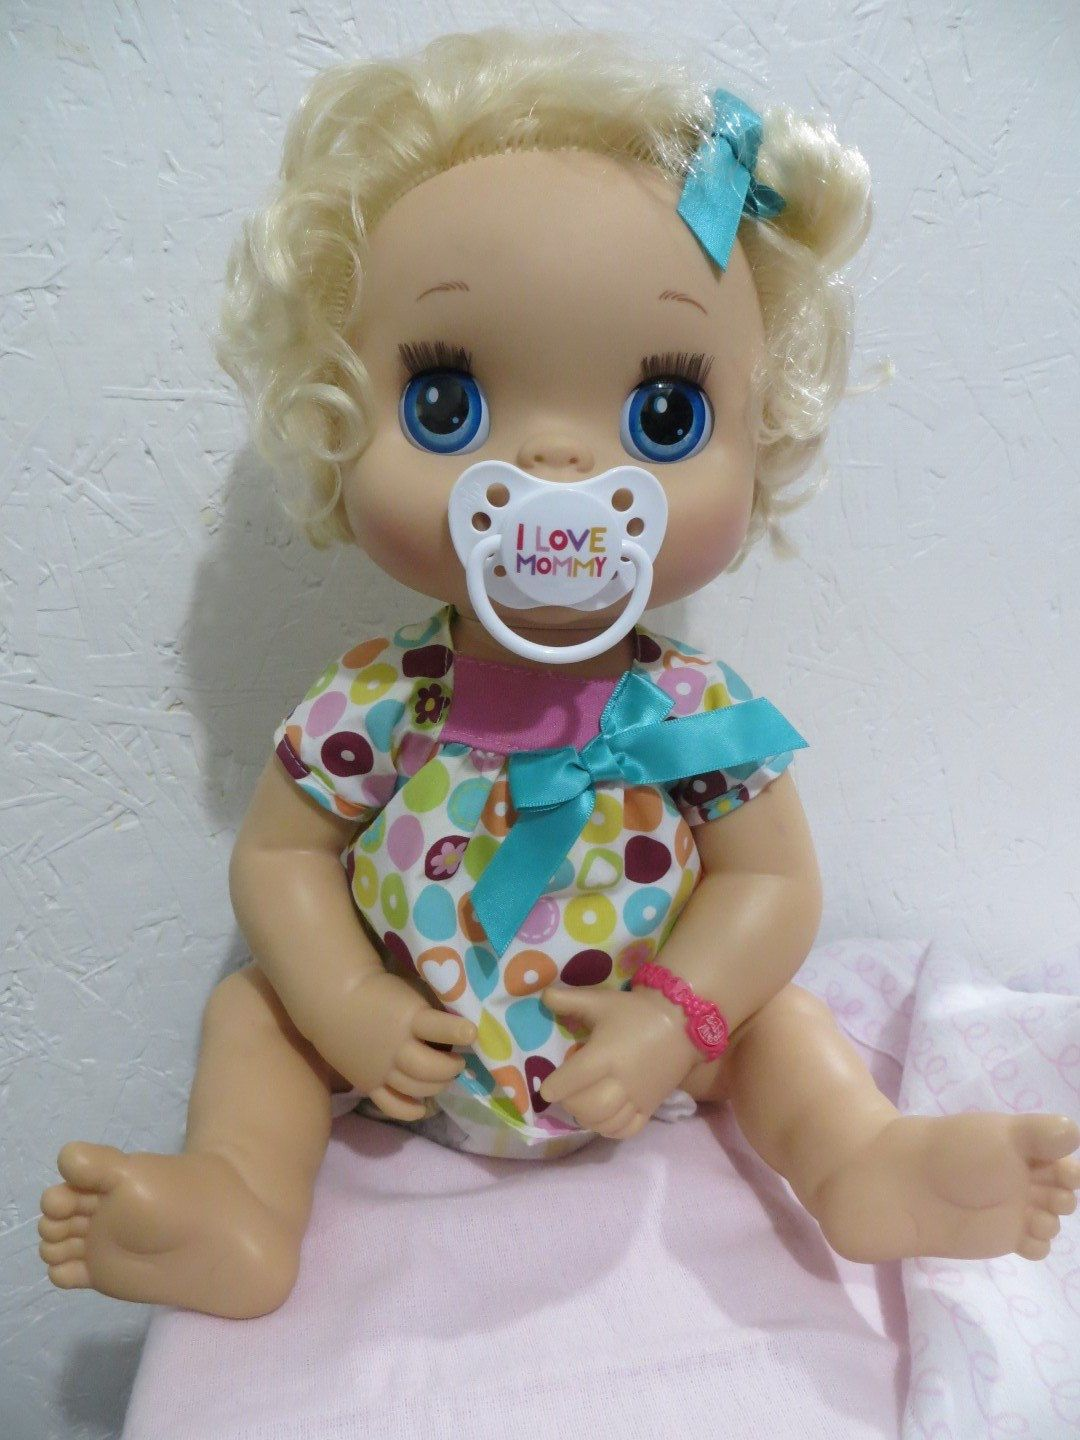 Baby Alive Pacifier For My Baby Alive 2010 Interactive Doll I Love Mommy Please Read Description By Reb Baby Alive Baby Alive Doll Clothes Baby Alive Dolls